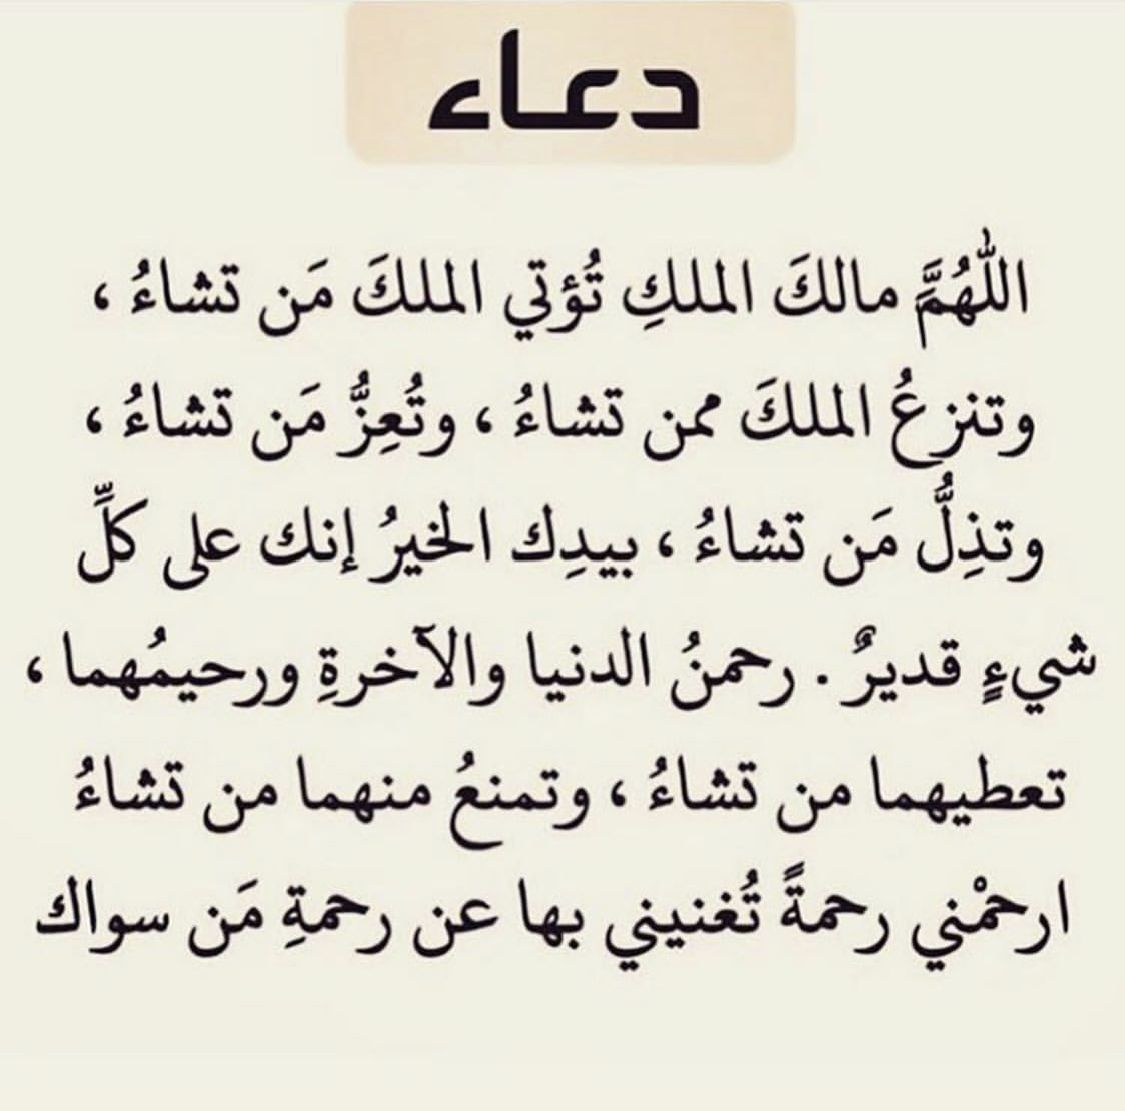 Pin By Imane Ben On د ﻋآء Quran Quotes Islamic Prayer Islamic Quotes